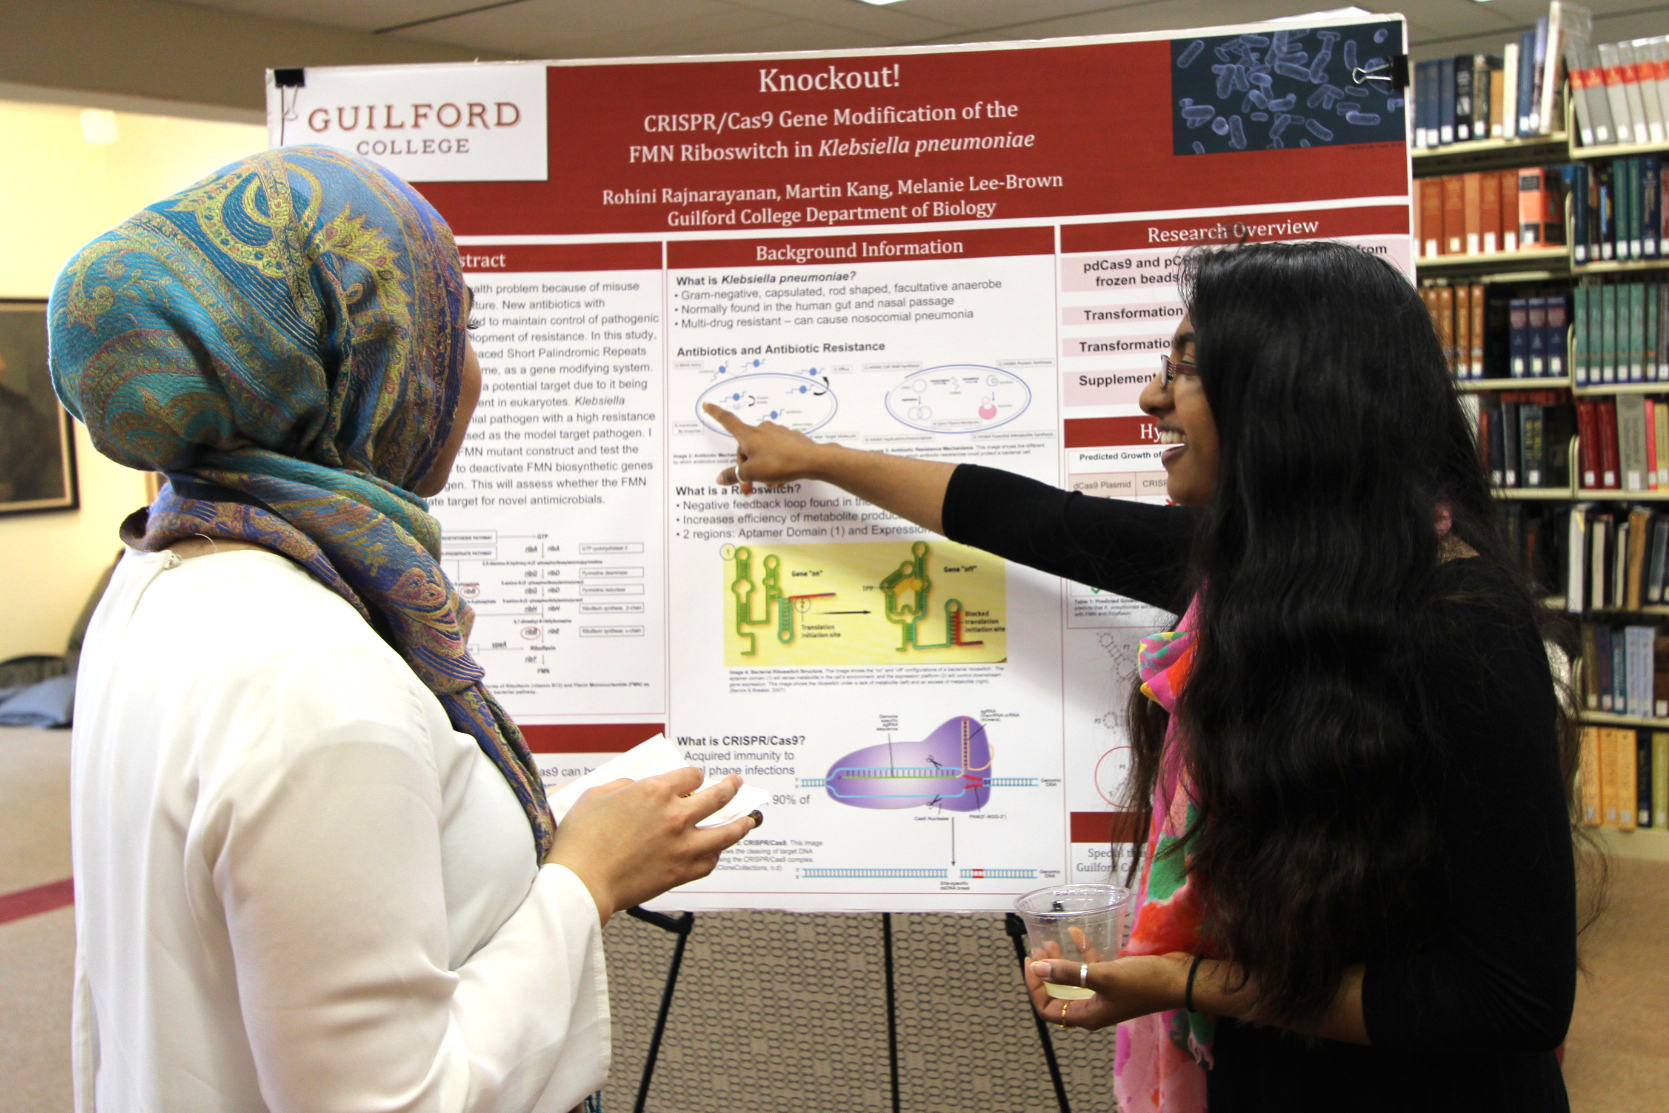 Two students looking at a research poster